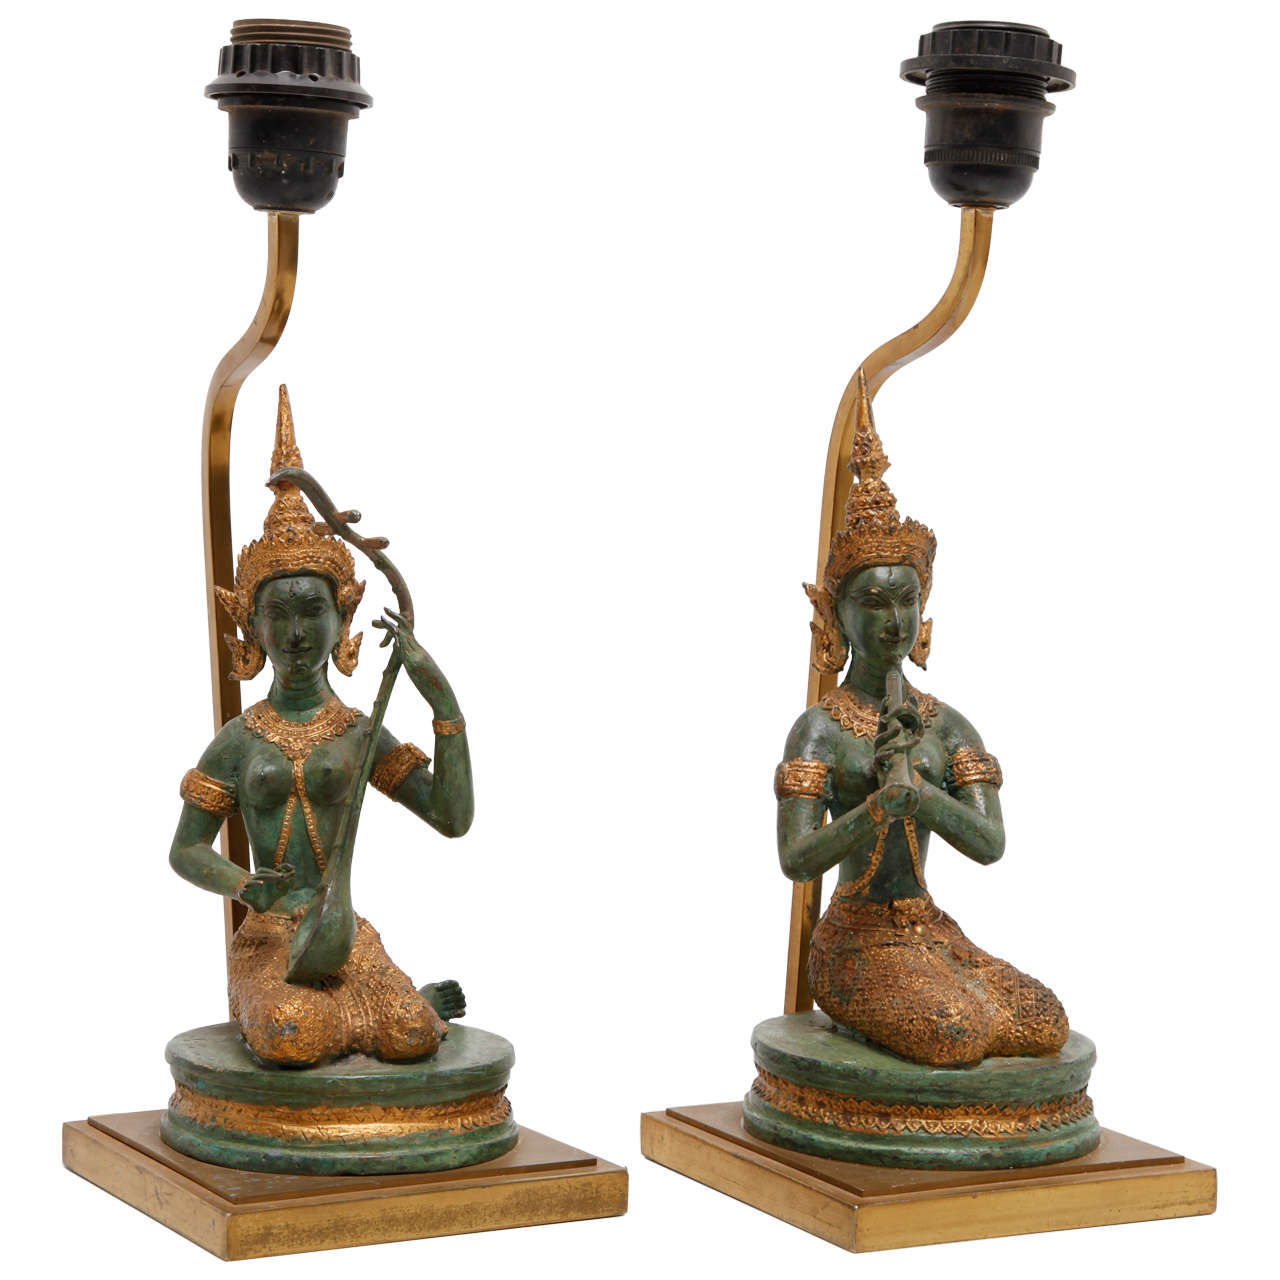 A set of bronze gilded indian goddesses table lamps for sale at a set of bronze gilded indian goddesses table lamps 1 geotapseo Gallery